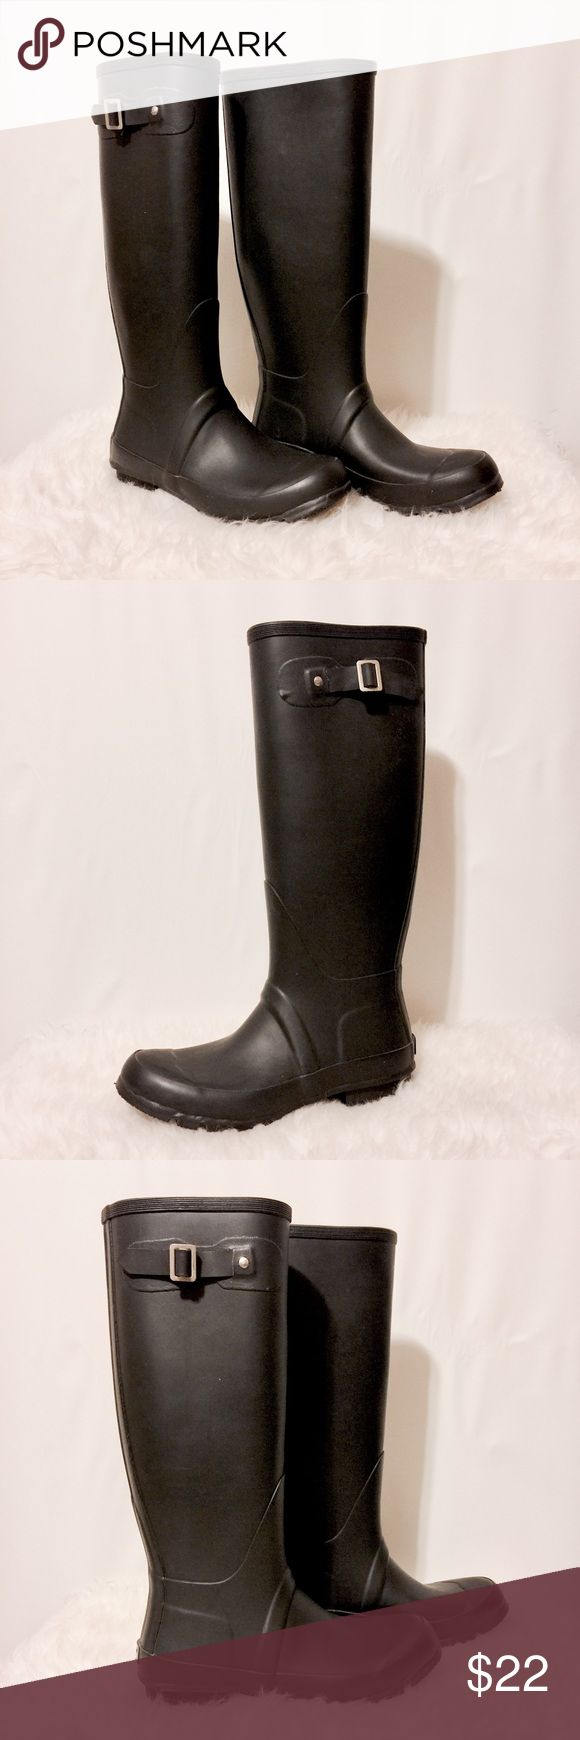 1000  ideas about Black Rain Boots on Pinterest | Hunter boots ...